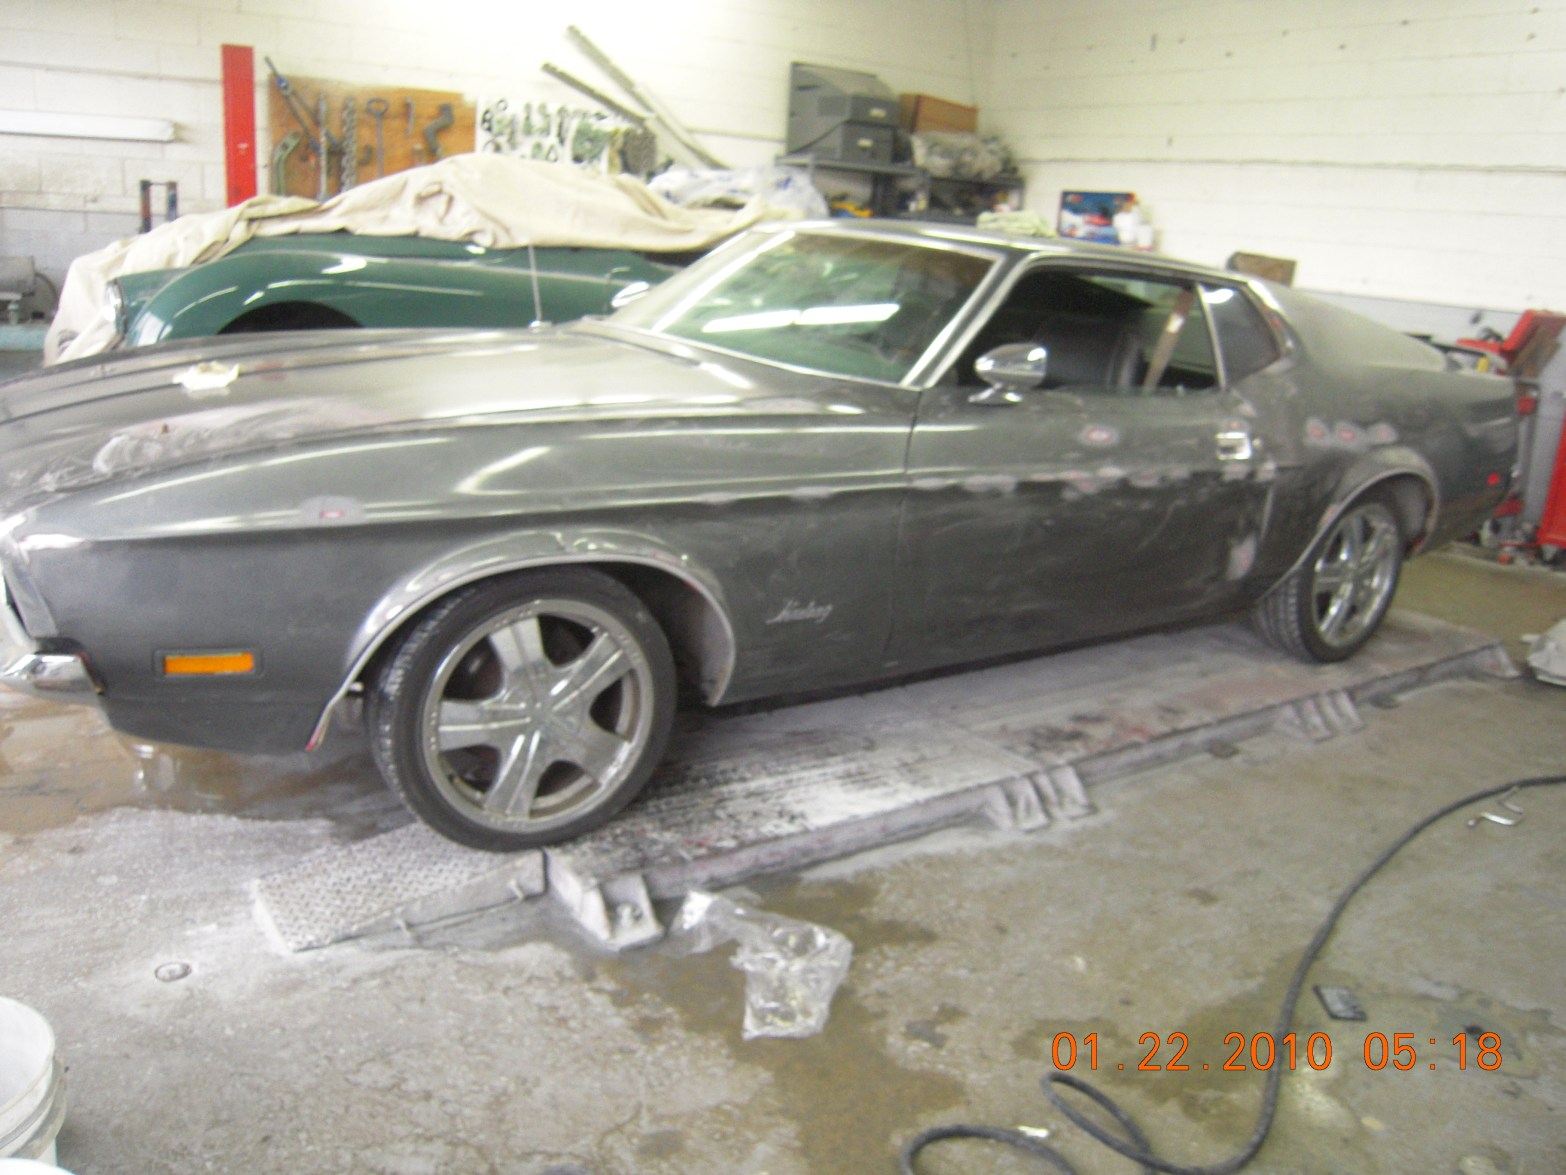 west-coast-body-and-paint-1971-mustang-mach-1-gray-1